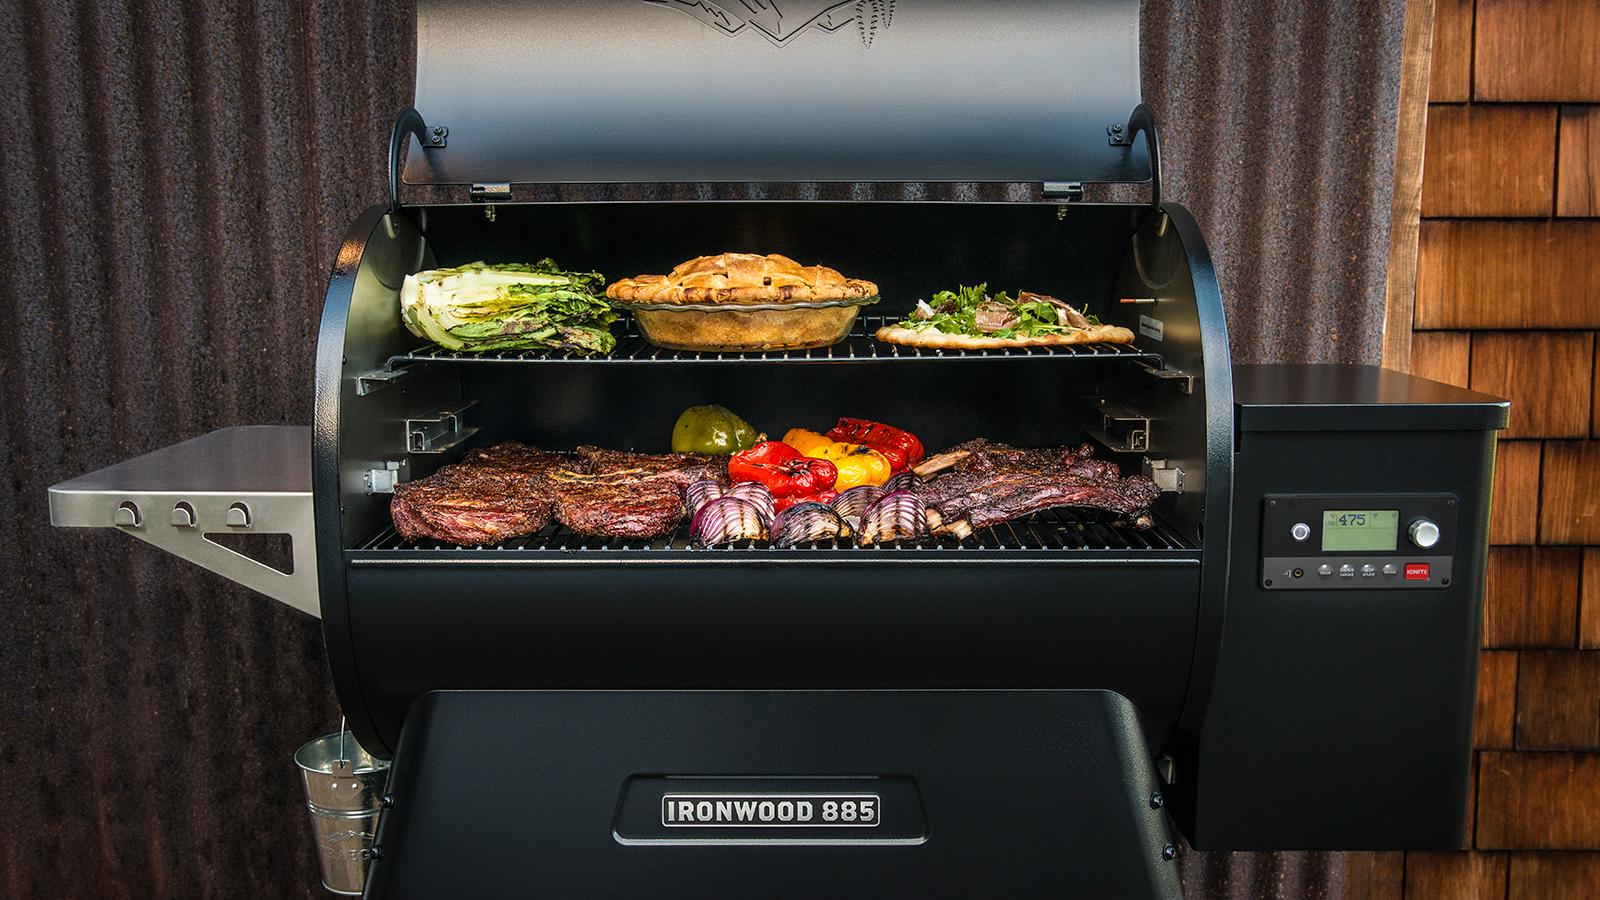 Ironwood Pellet Grill